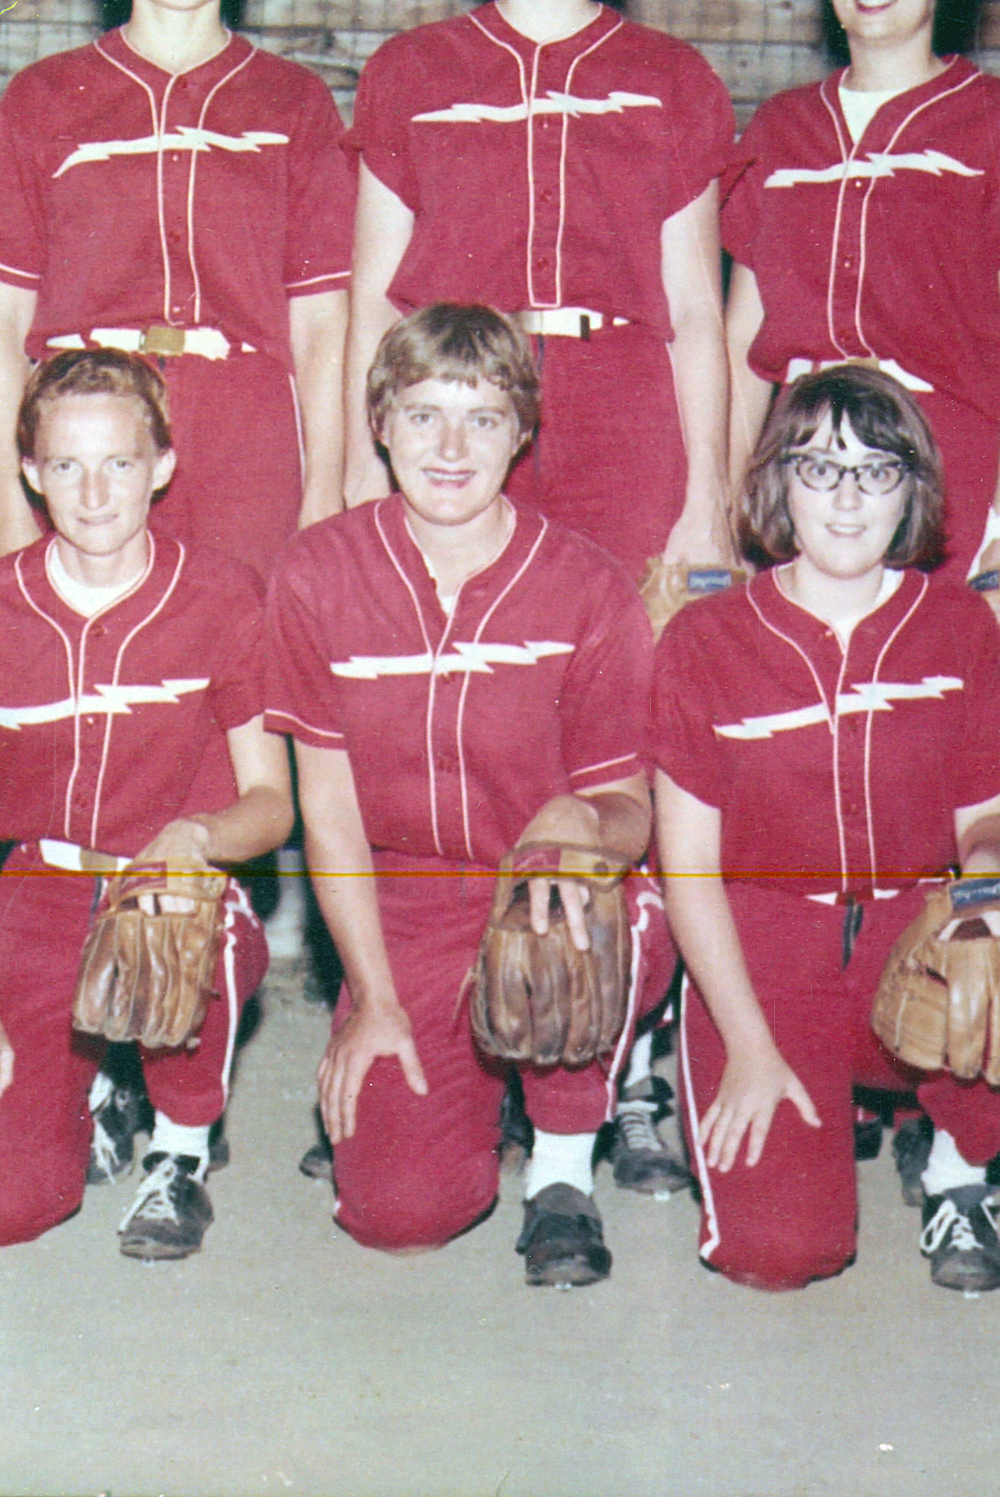 """Blanche Even was South Dakota's greatest women's fastpitch player. """"She could play shortstop for any men's team,"""" Locke coach Ike Hoover said in a 1992 Argus Leader story. """"She was the best there ever was at that position."""" There were no sporting events for girls in high school during the 1940s, so Even's extracurricular activities included being a majorette for the school """"Pep Squad.""""She grew up around ballplayers. Her father and five brothers all played baseball. """"I was always playing catch with my brothers,"""" recalled Even, the youngest of eight children. """"There weren't any teams for girls in Sioux Falls, so I'd always tag along with them.""""After graduation, Even worked at Crescent Electric Supply for two years. She joined Electric Construction Company in 1951, working there and with the later renamed retail division, Mahlander's Appliance & Lighting Company, for 44 years, retiring in 1995."""